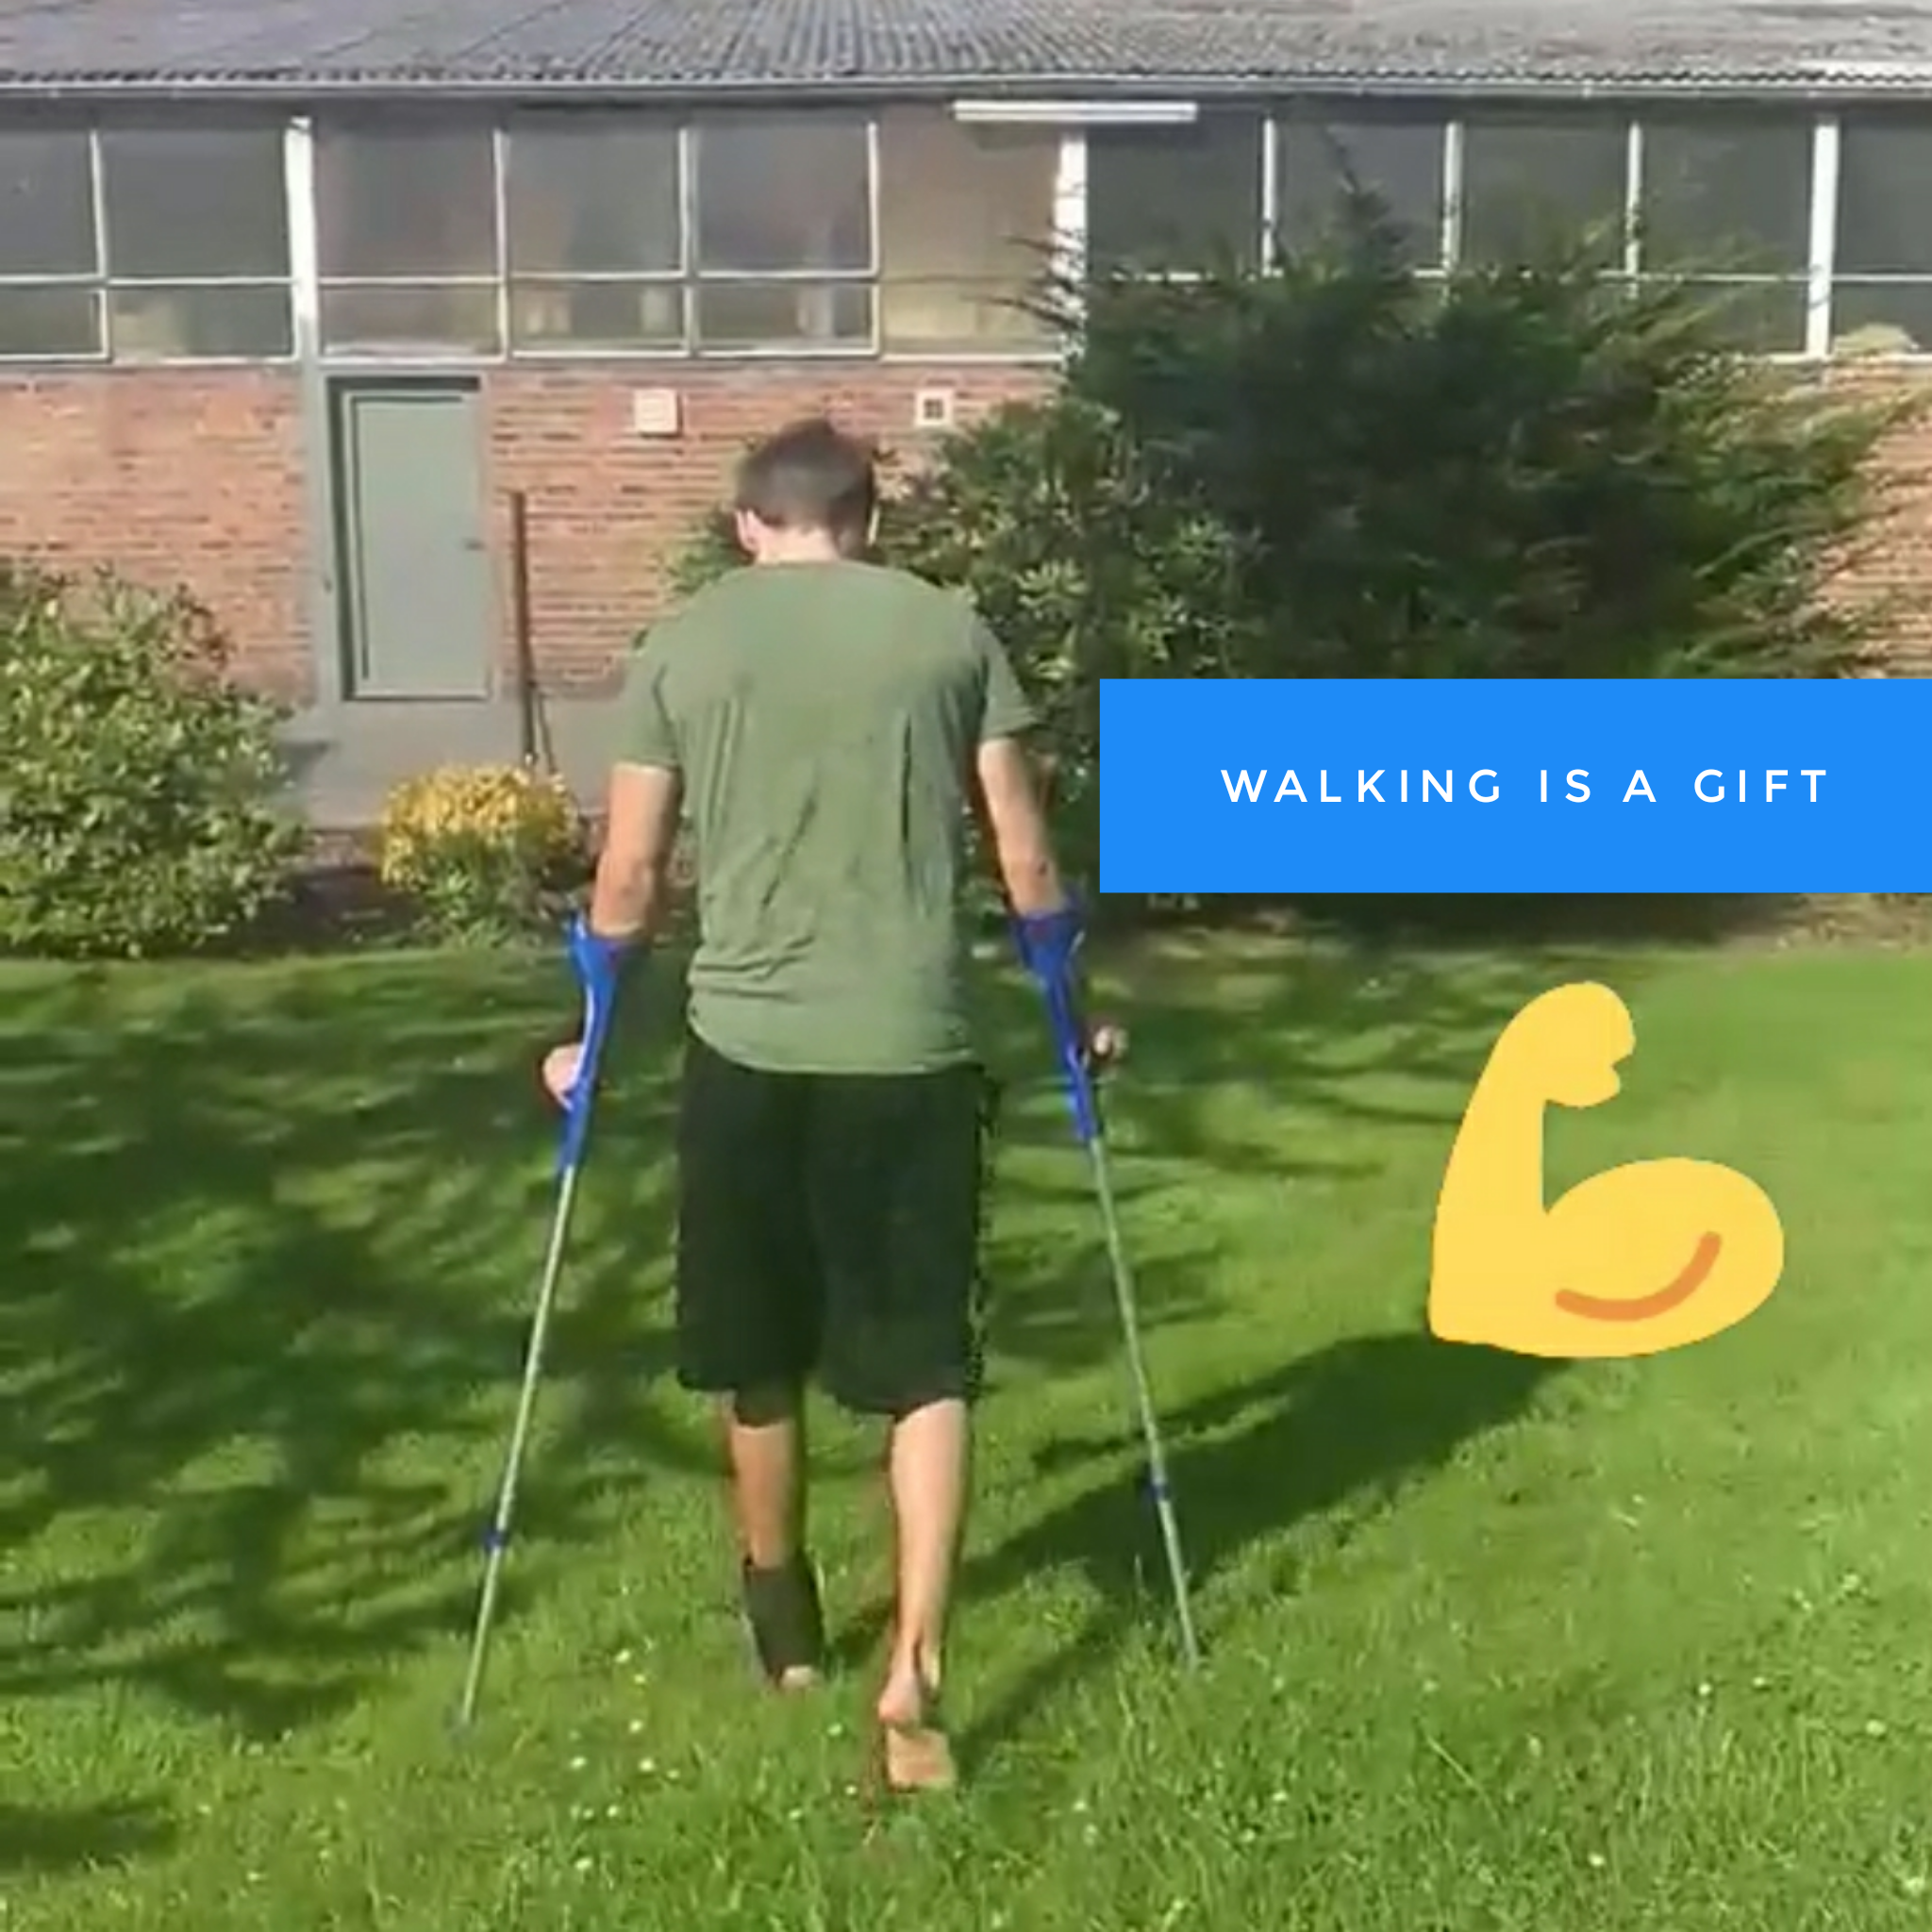 Walking is a gift